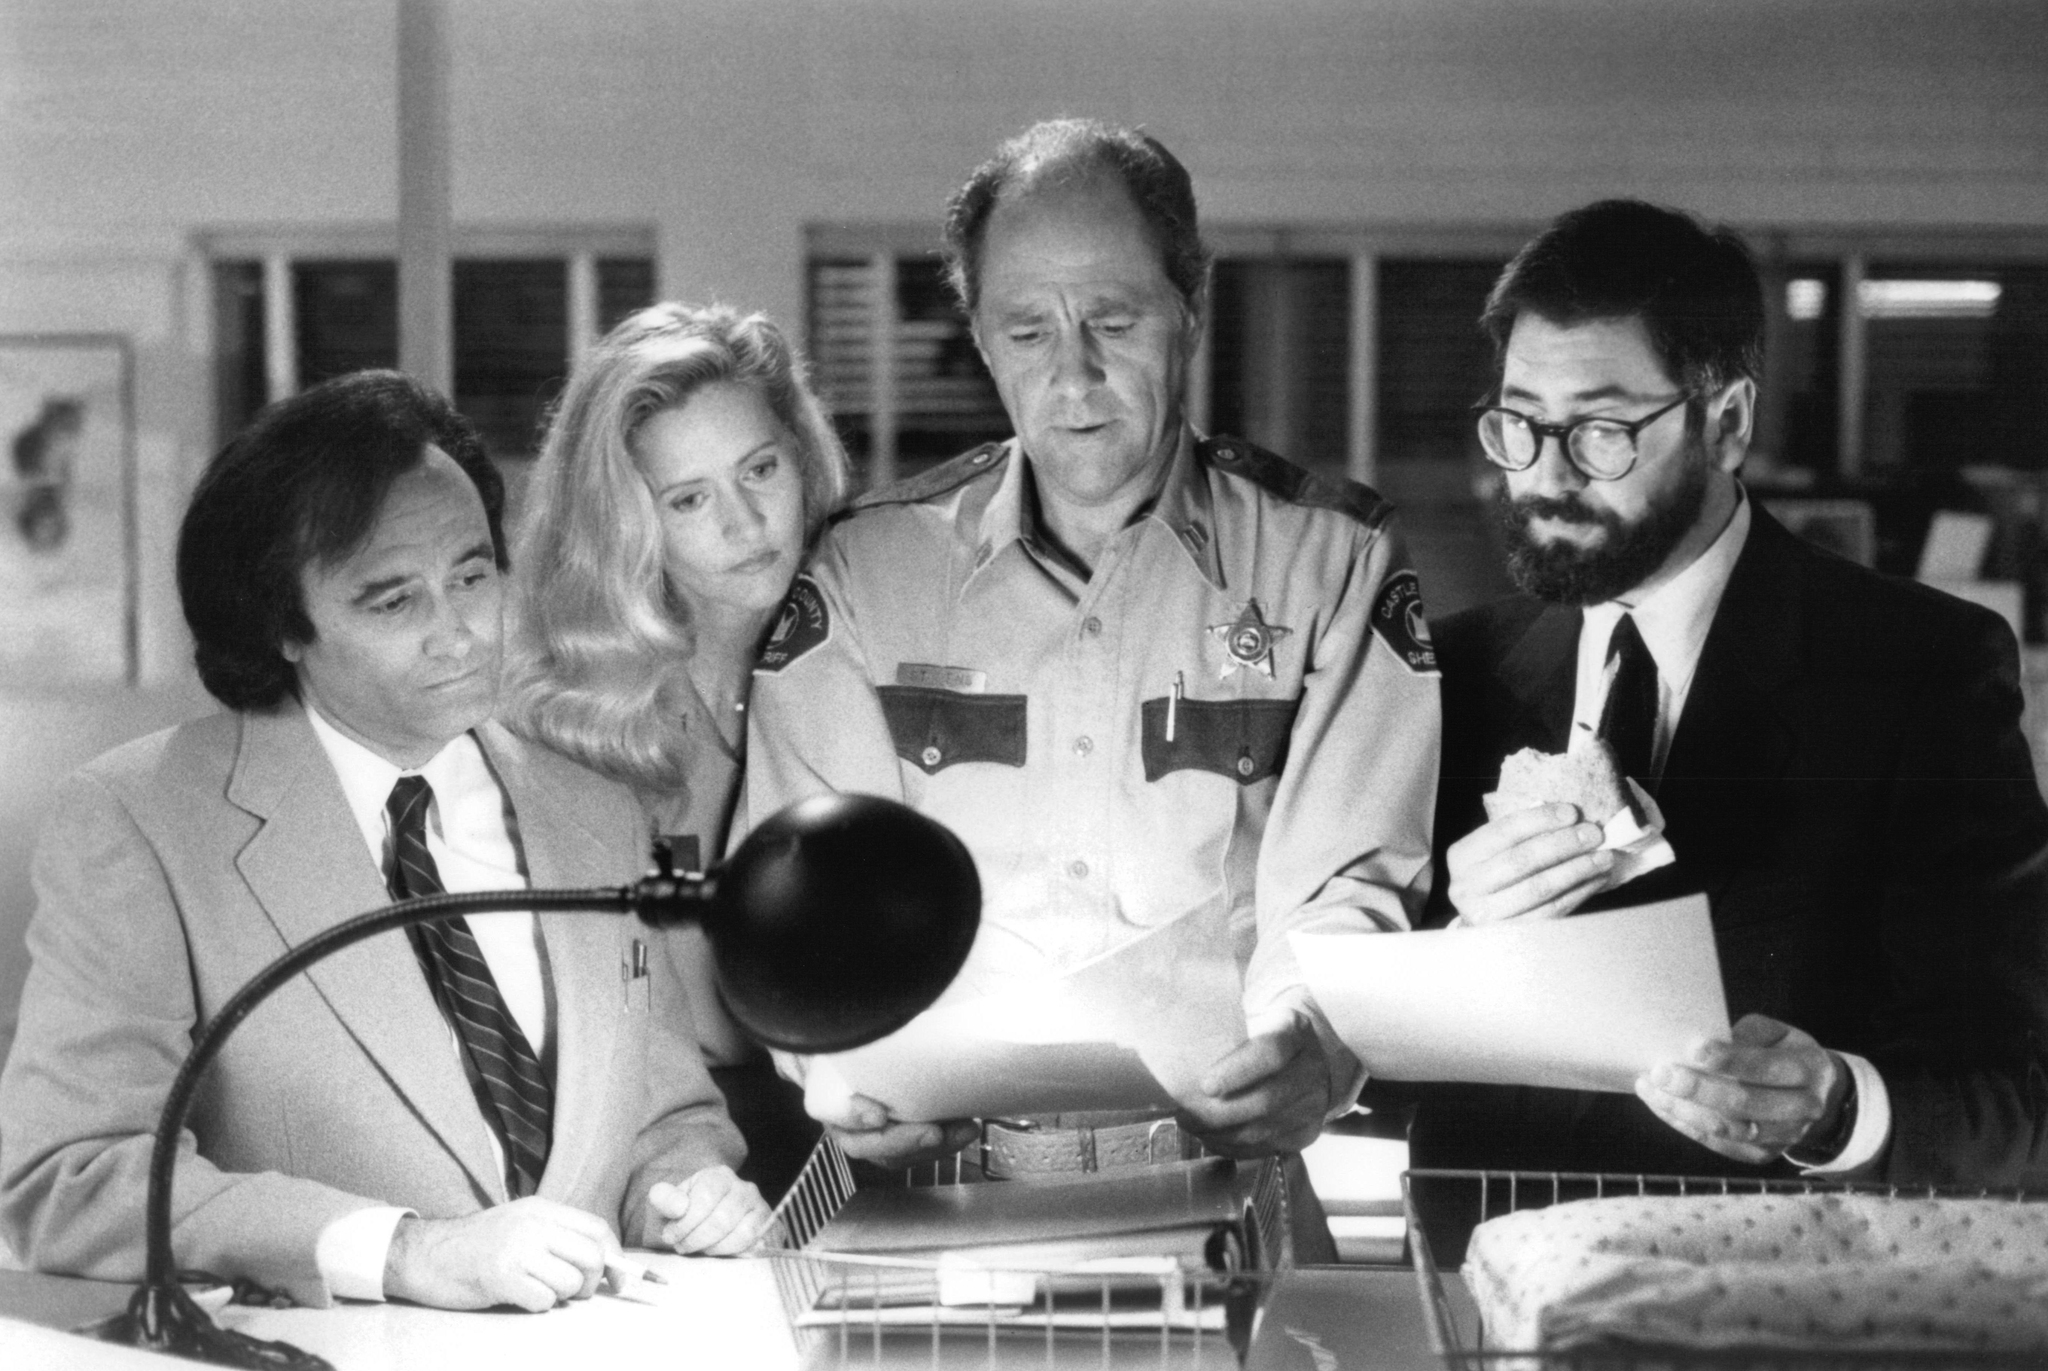 John Landis, Joe Dante, Cynthia Garris, and Jim Haynie in Sleepwalkers (1992)